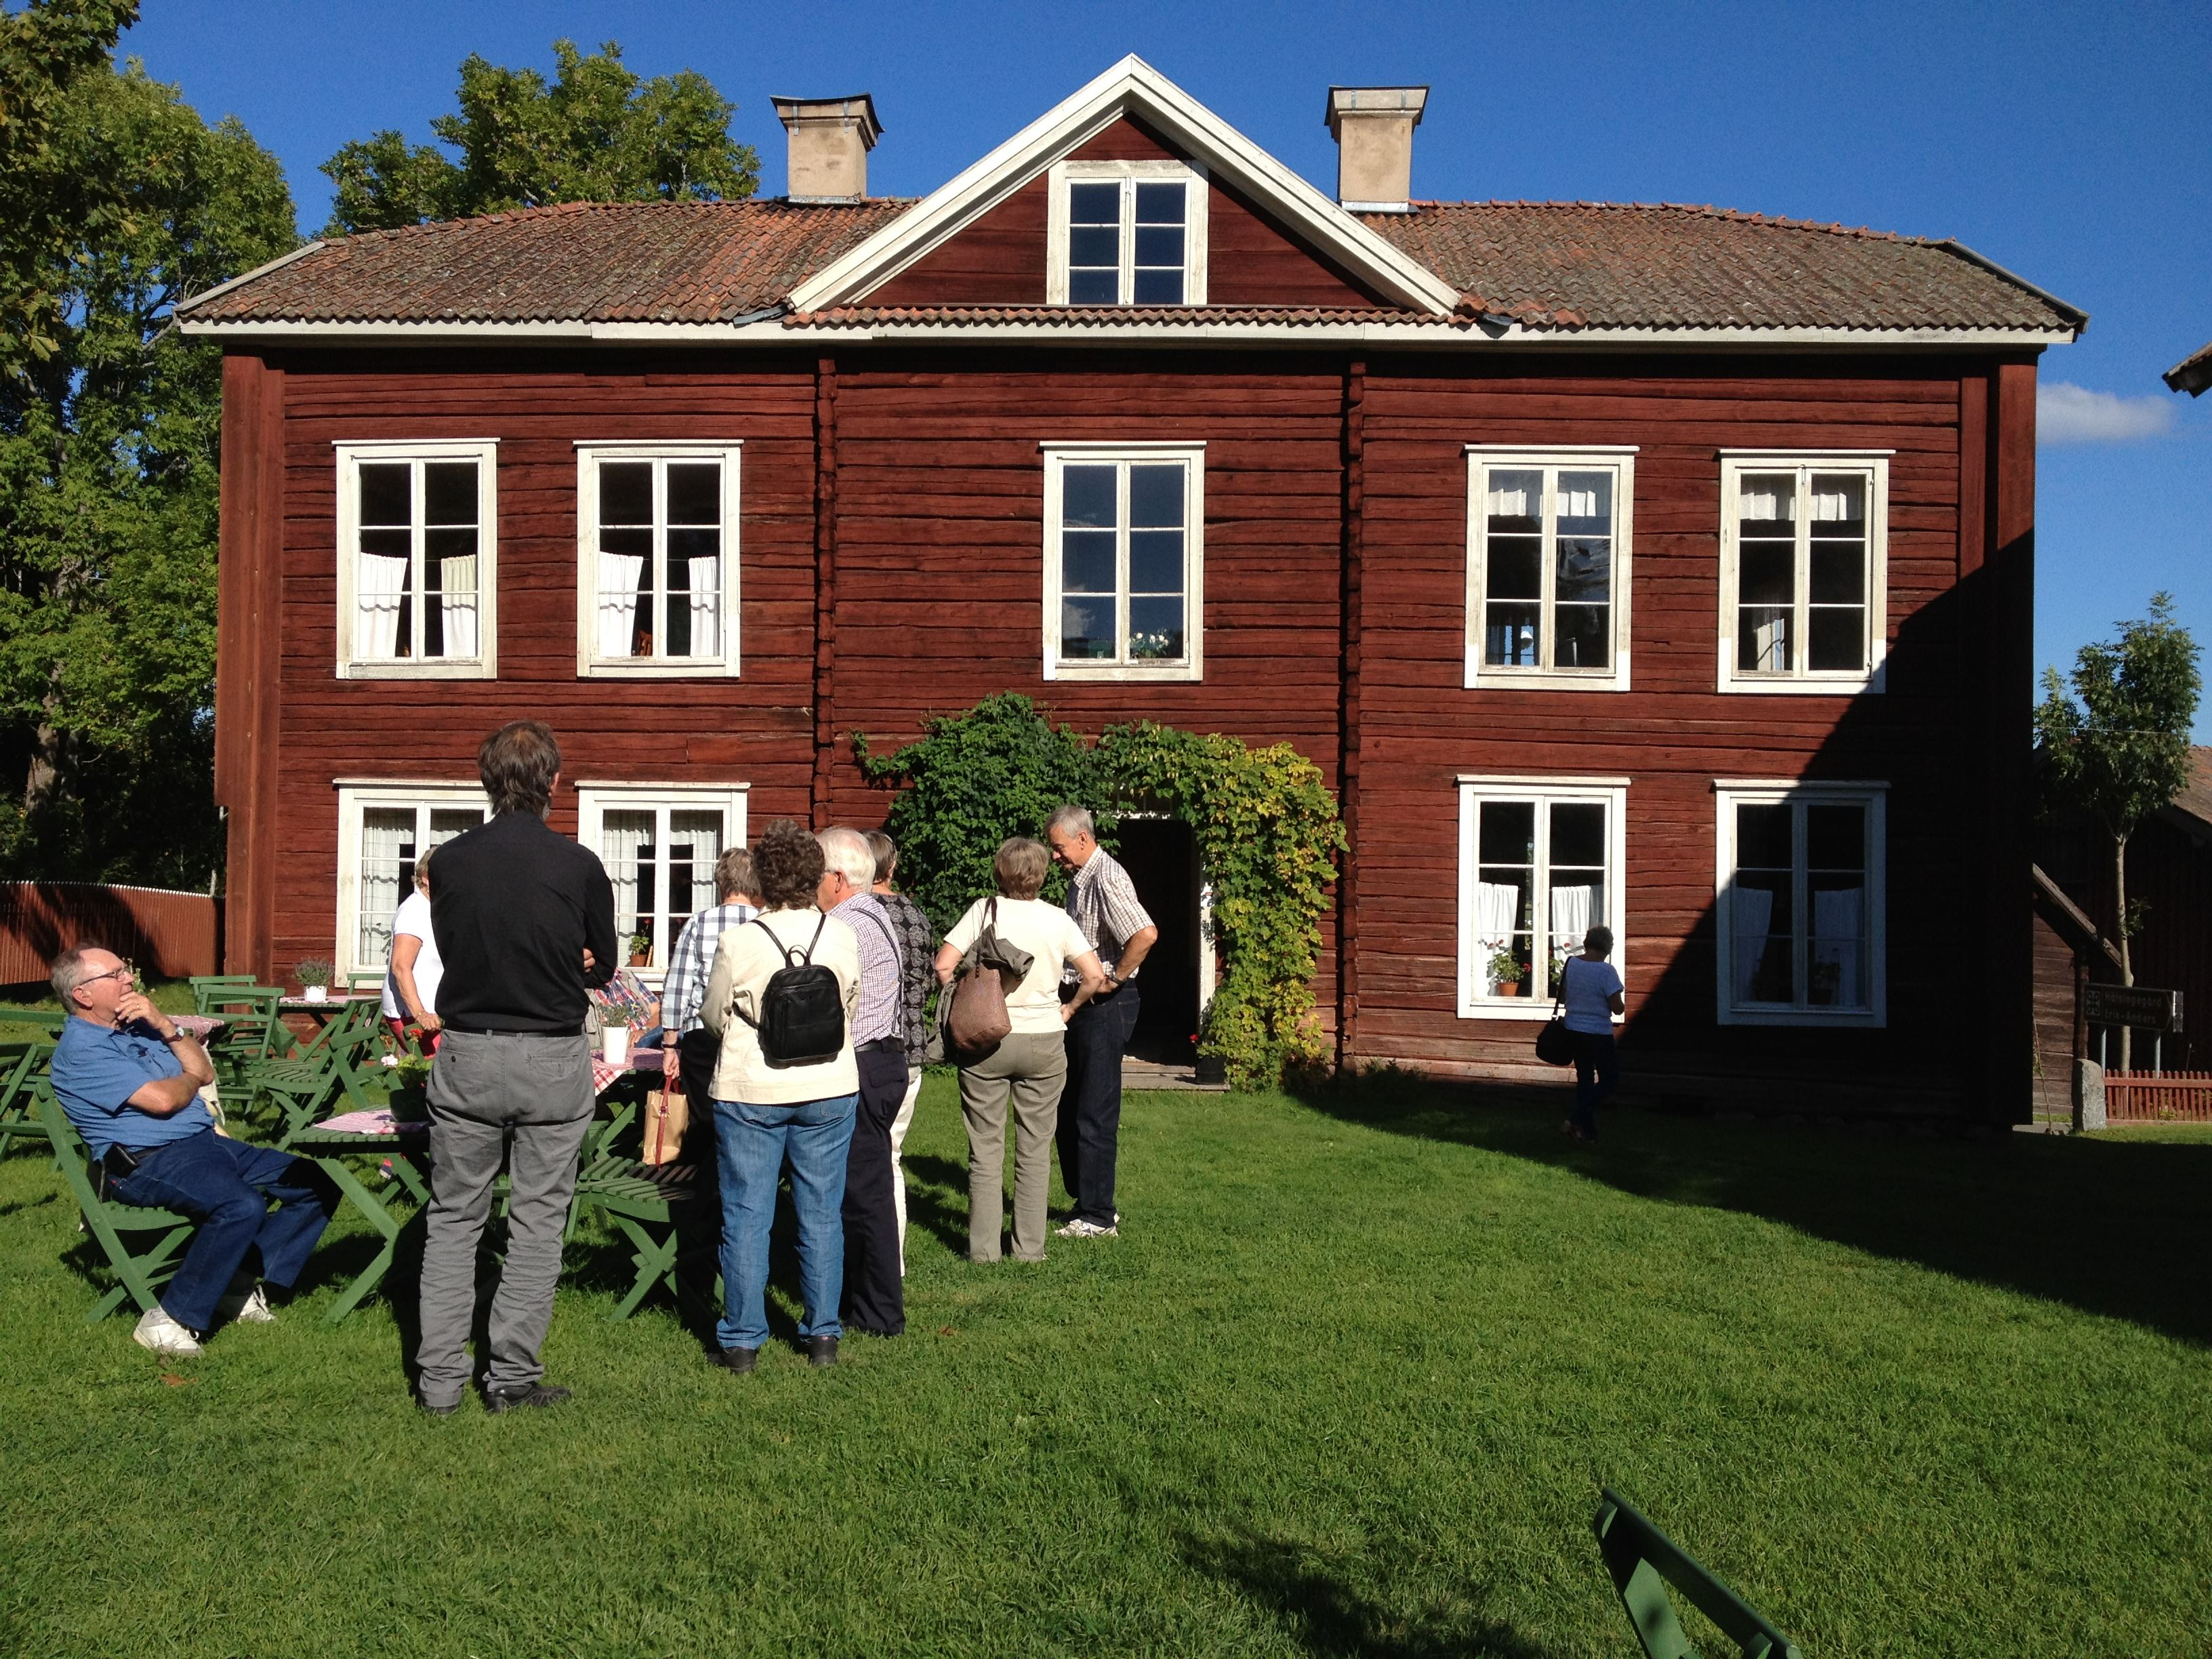 Oneday guided bus tour to places in Hälsingland